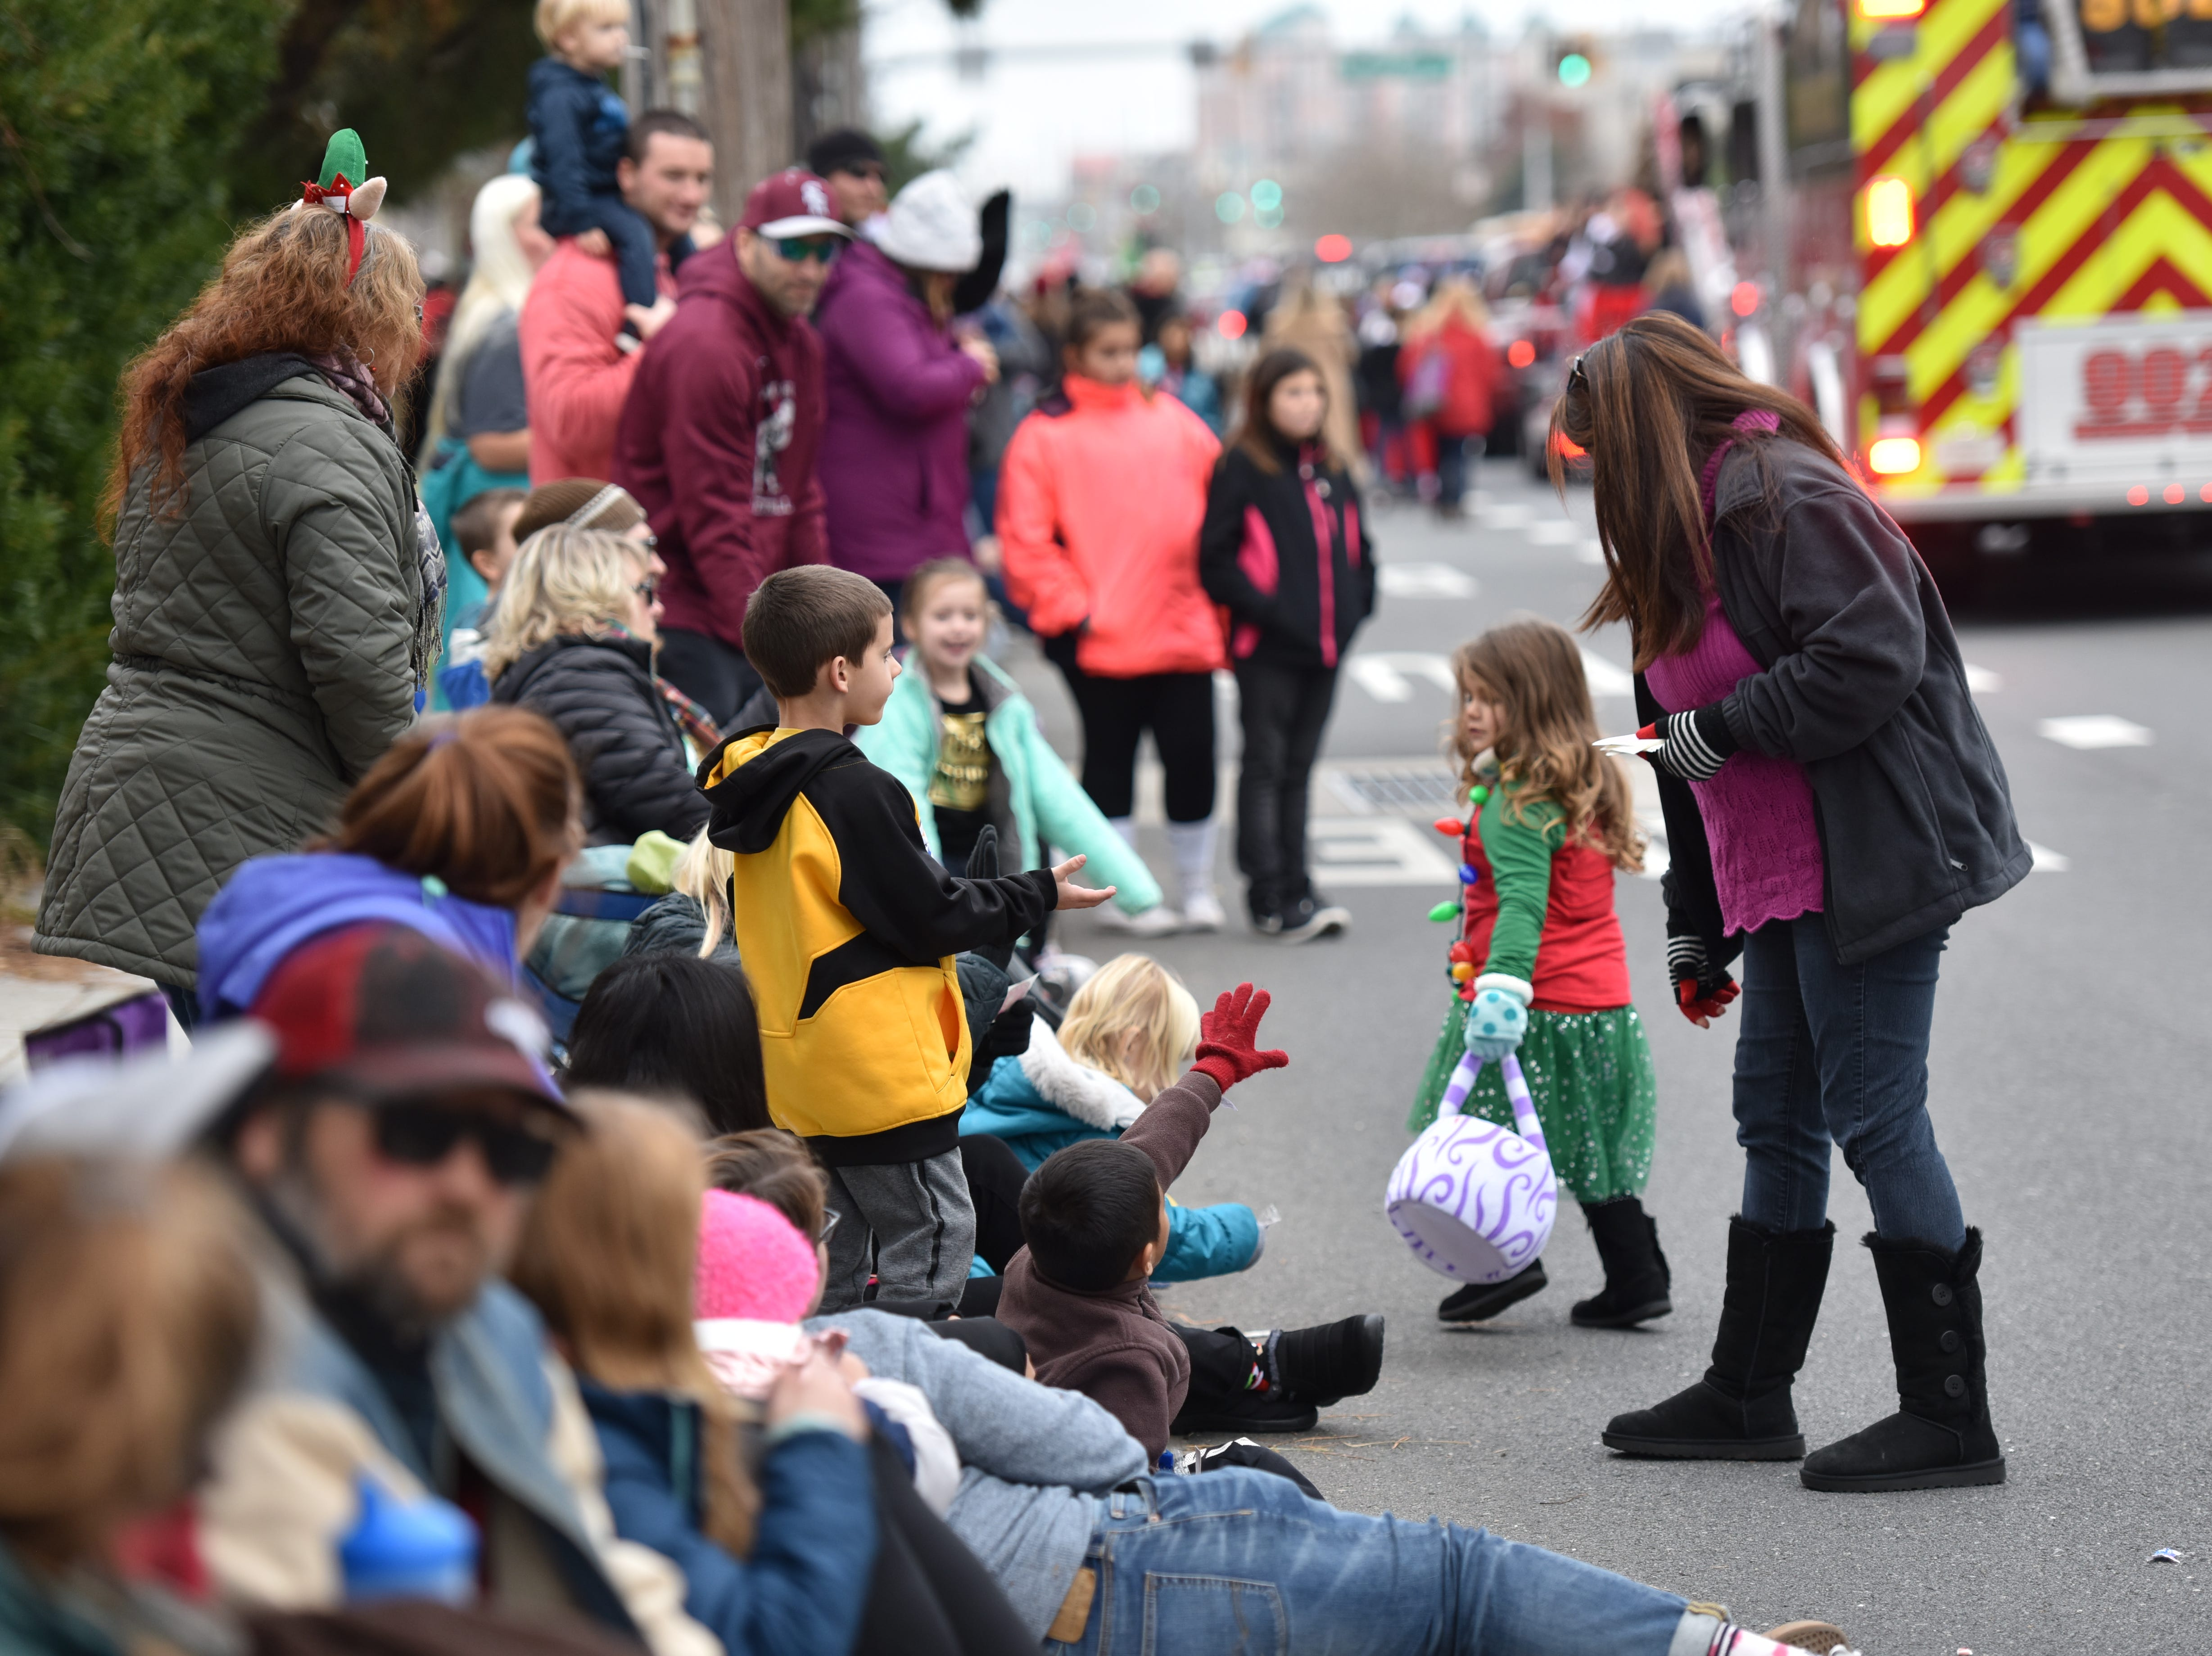 Kids got candy and freebies at the Ocean City Chrsitmas parade on Saturday, Dec. 1, 2018.